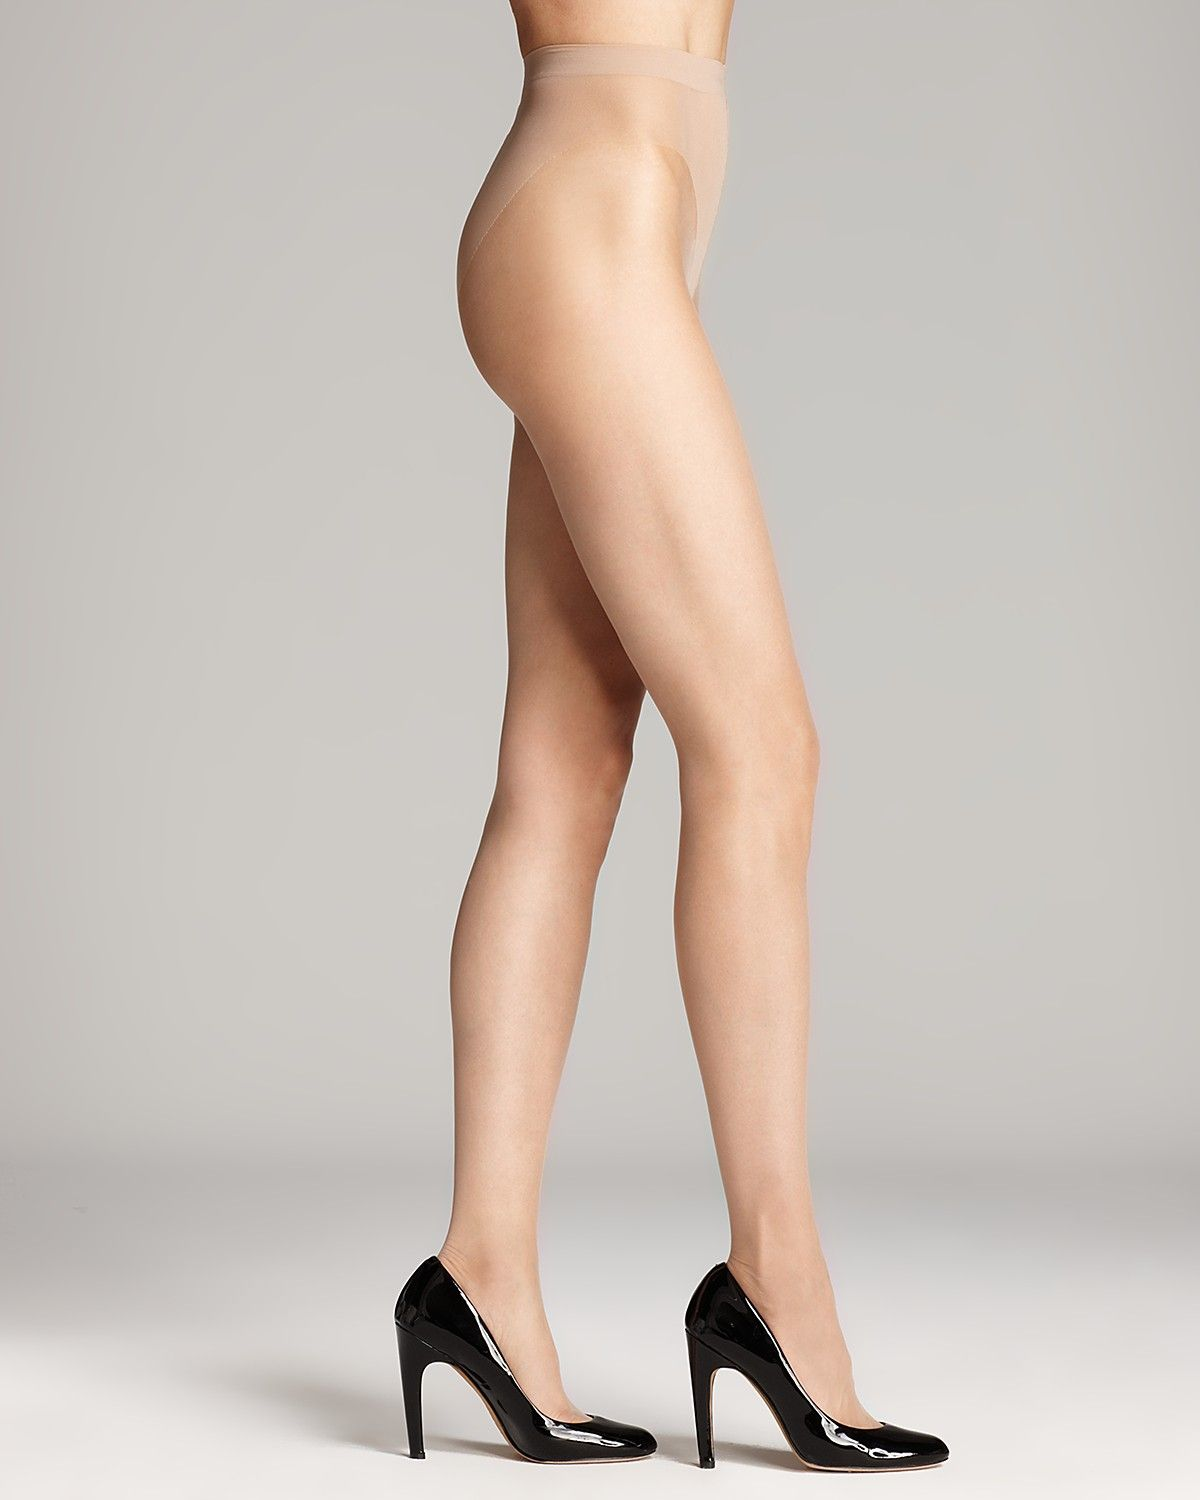 d38124d94 Wolford Tights - Luxe 9 Sheer  017028